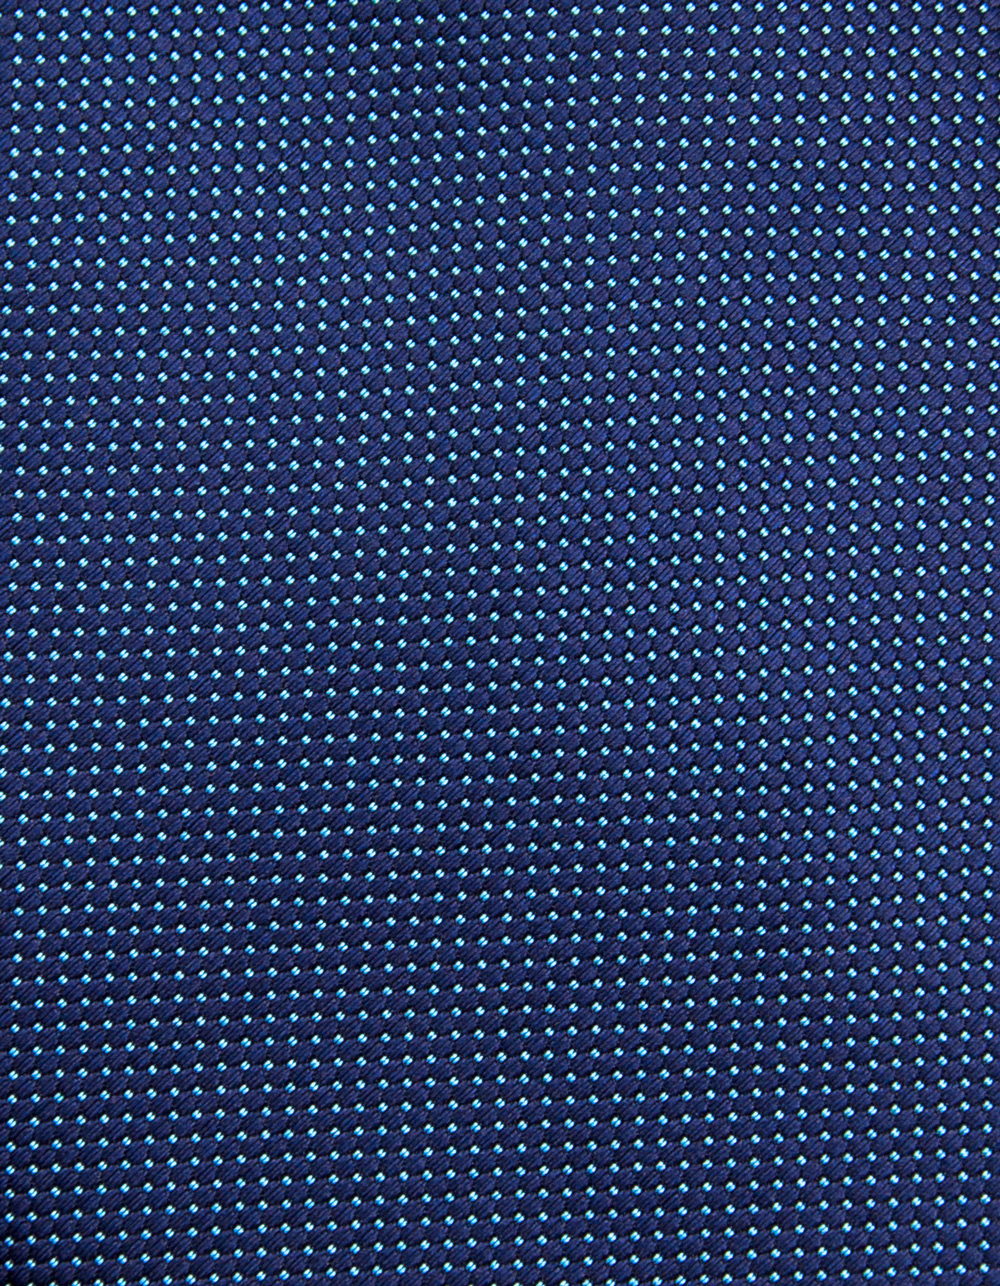 Blue tie with micro polka dots - Backside